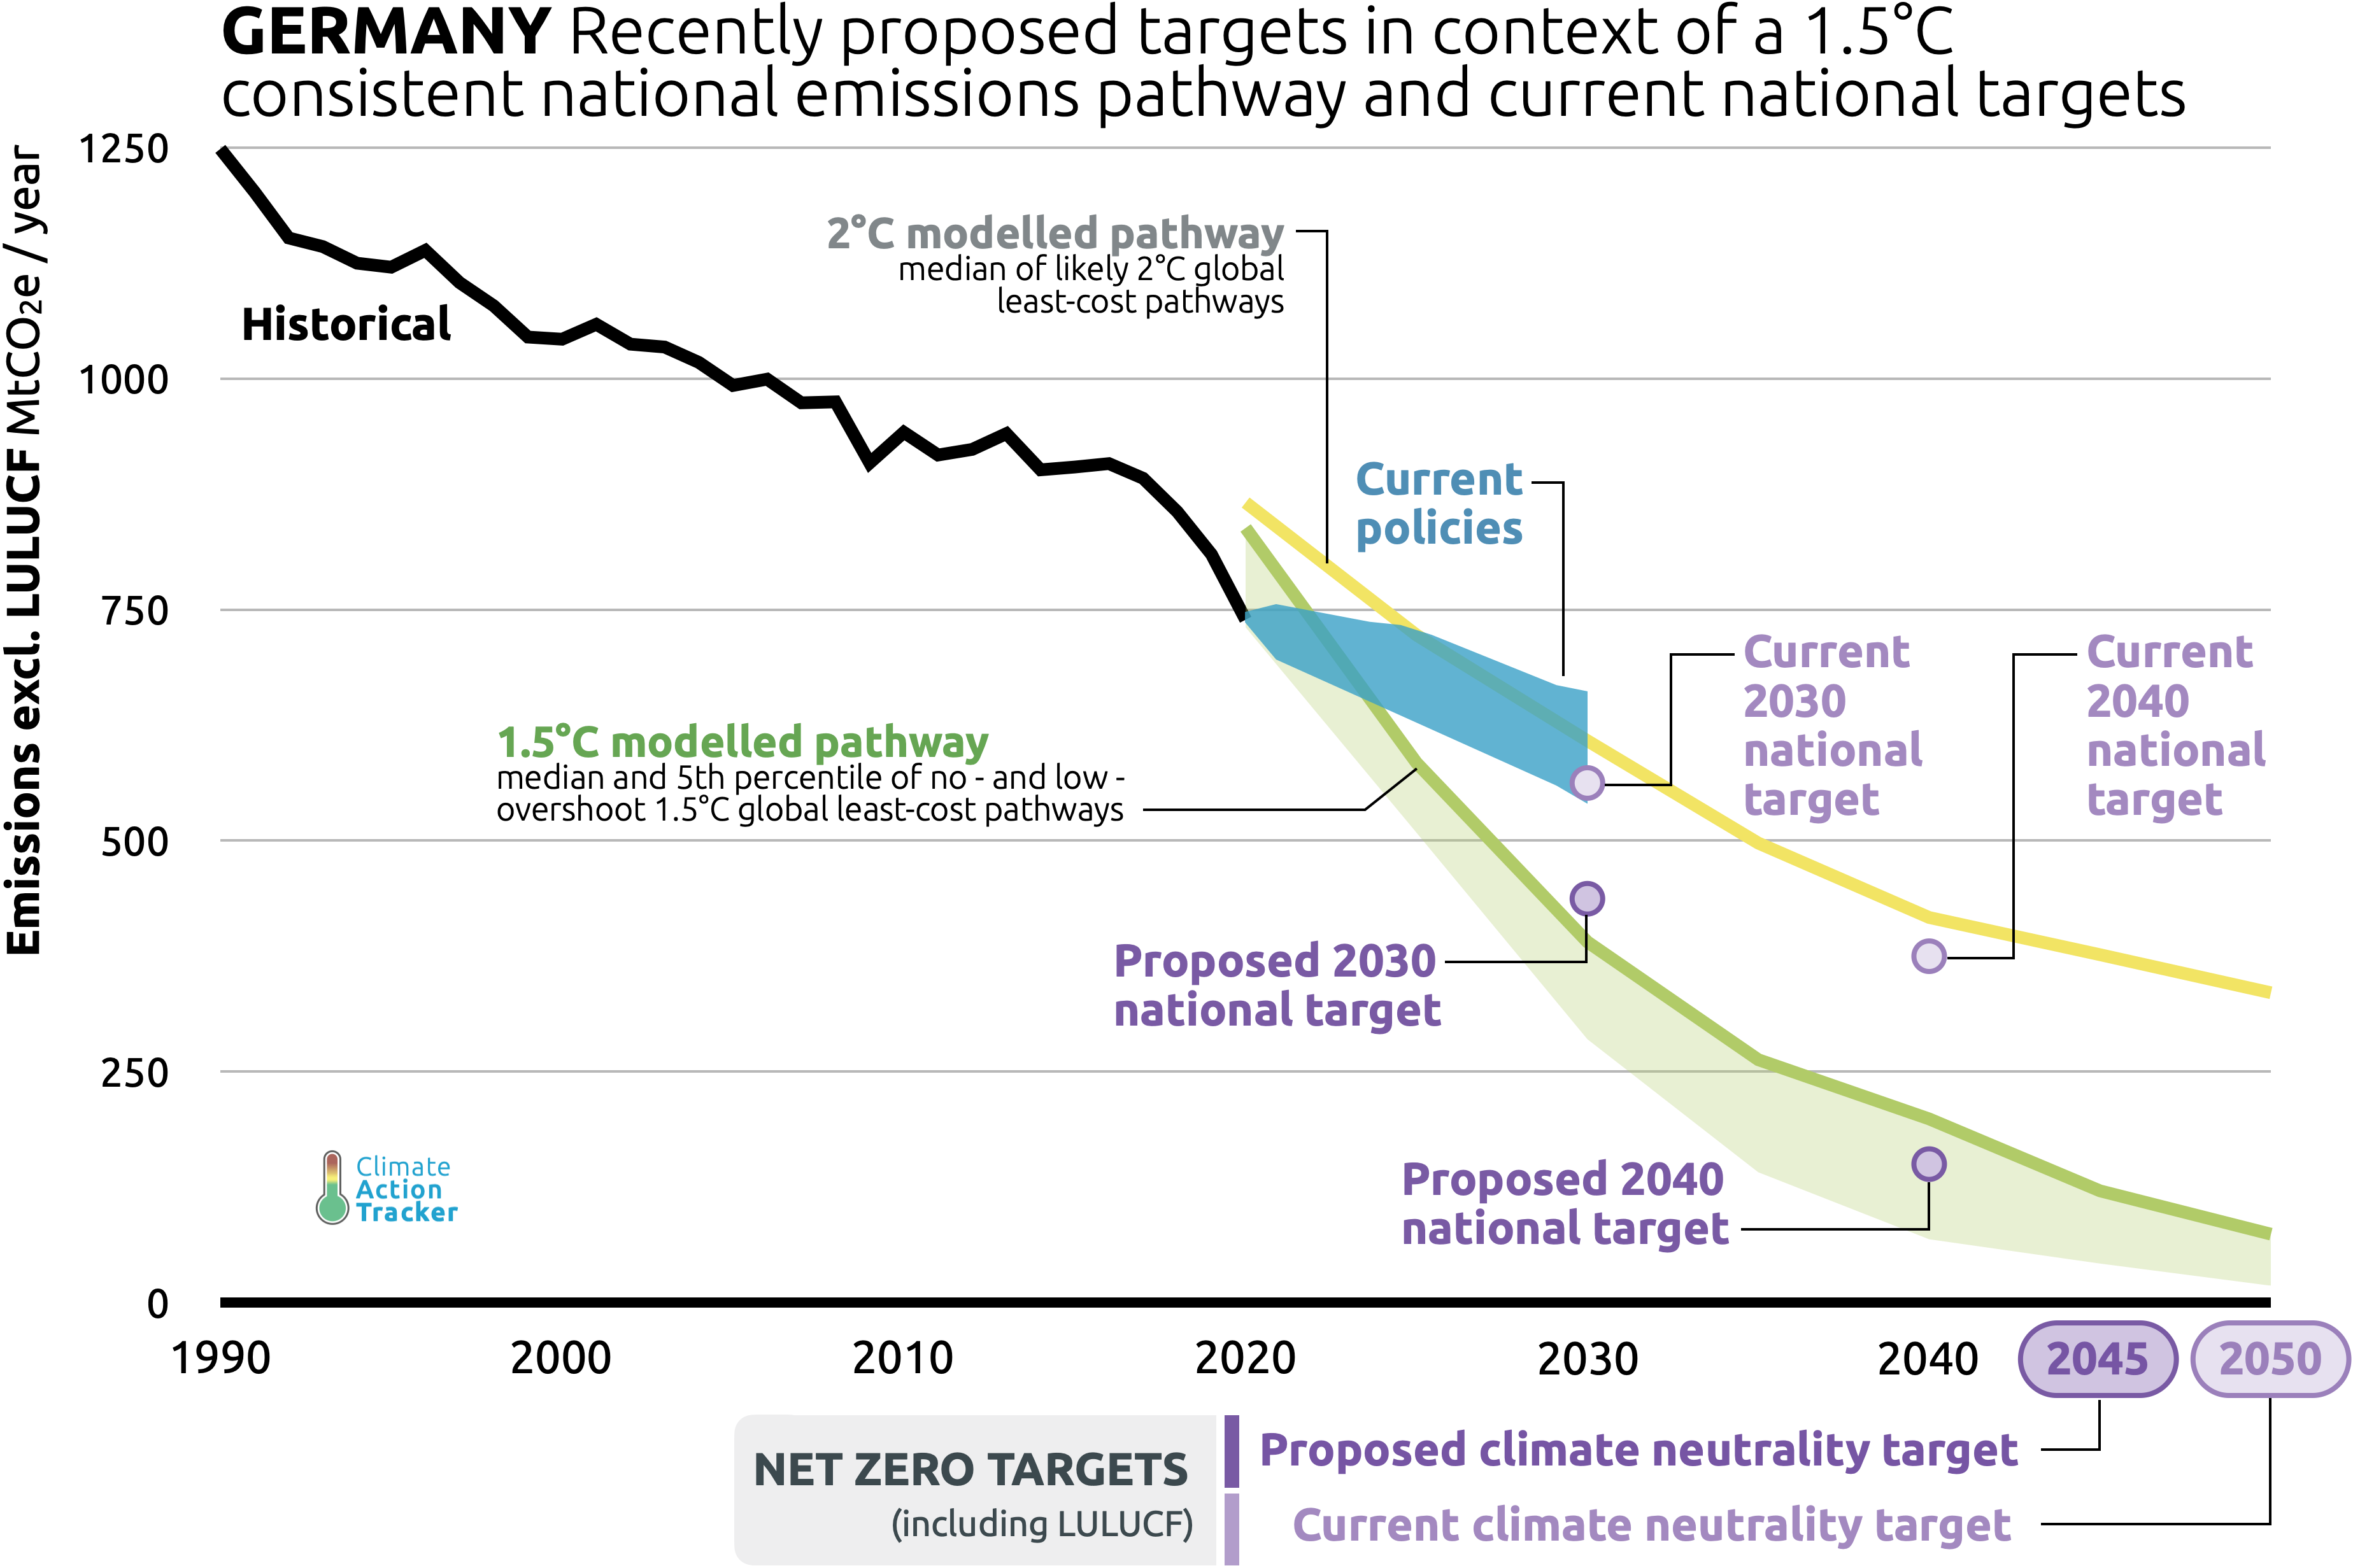 Germany's proposed 8 national target not yet 8.8˚C compatible ...